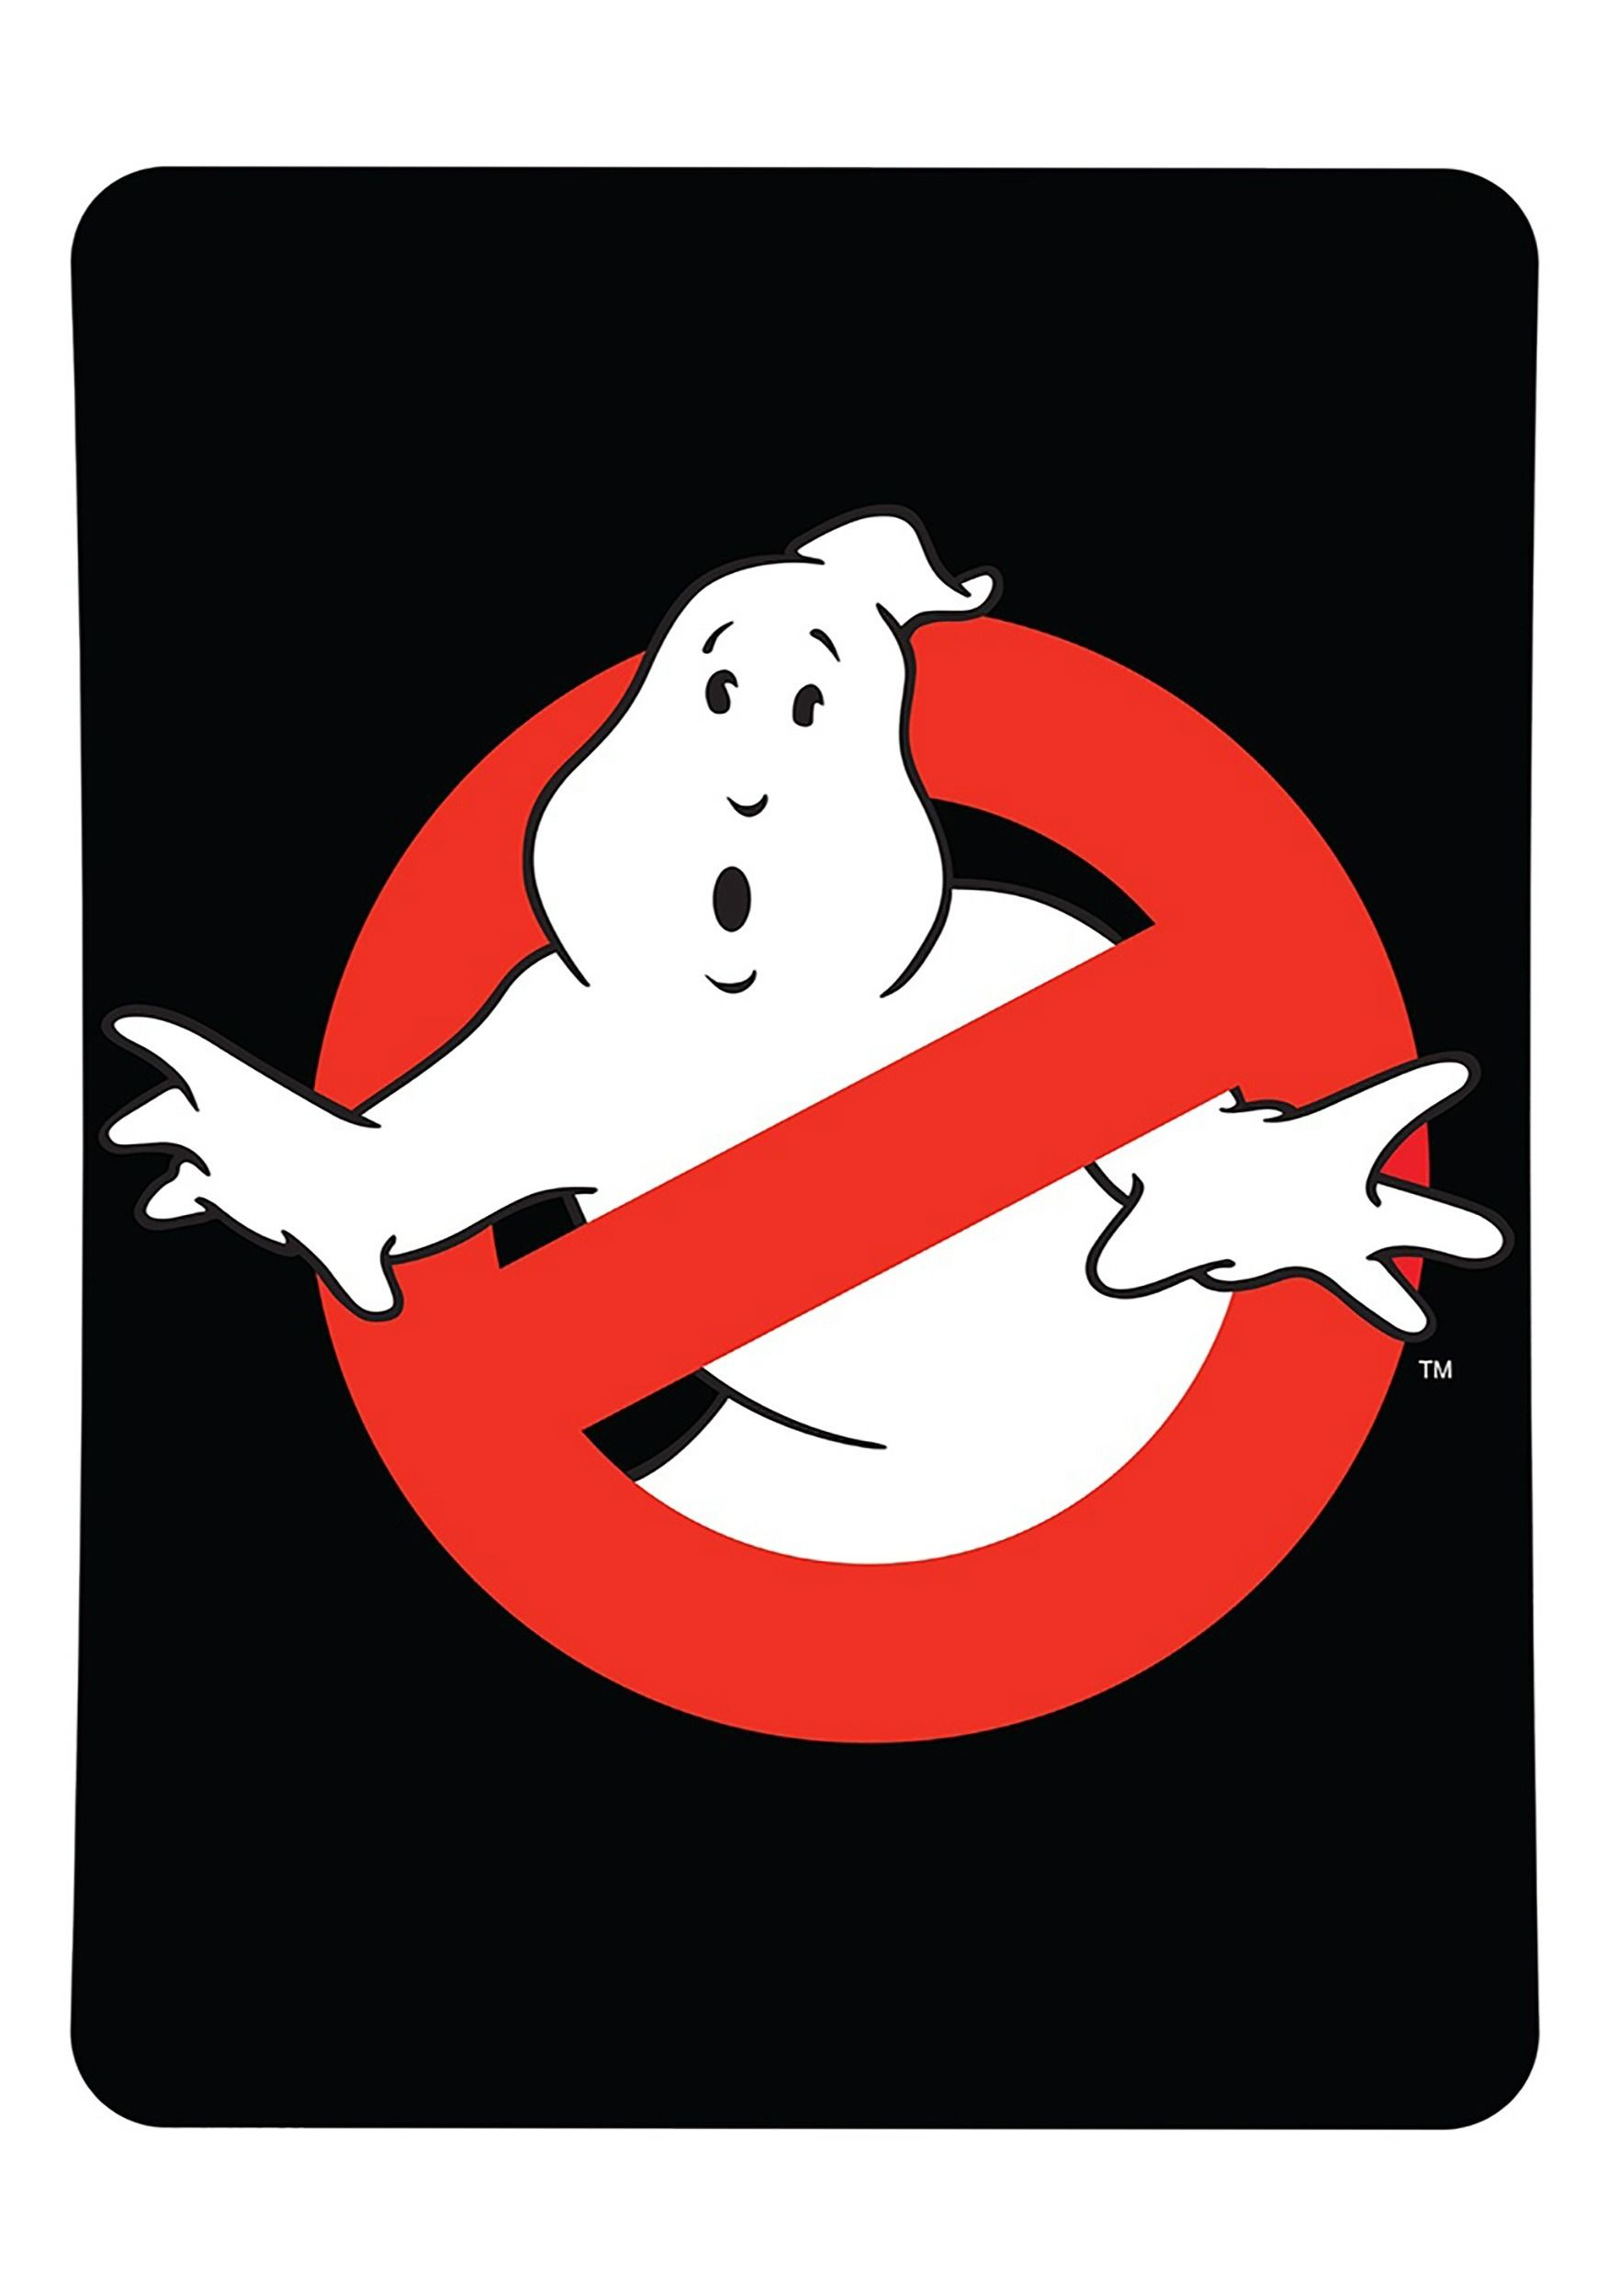 Ghostbusters logo keep warm logan fleece throw home kitchens game room